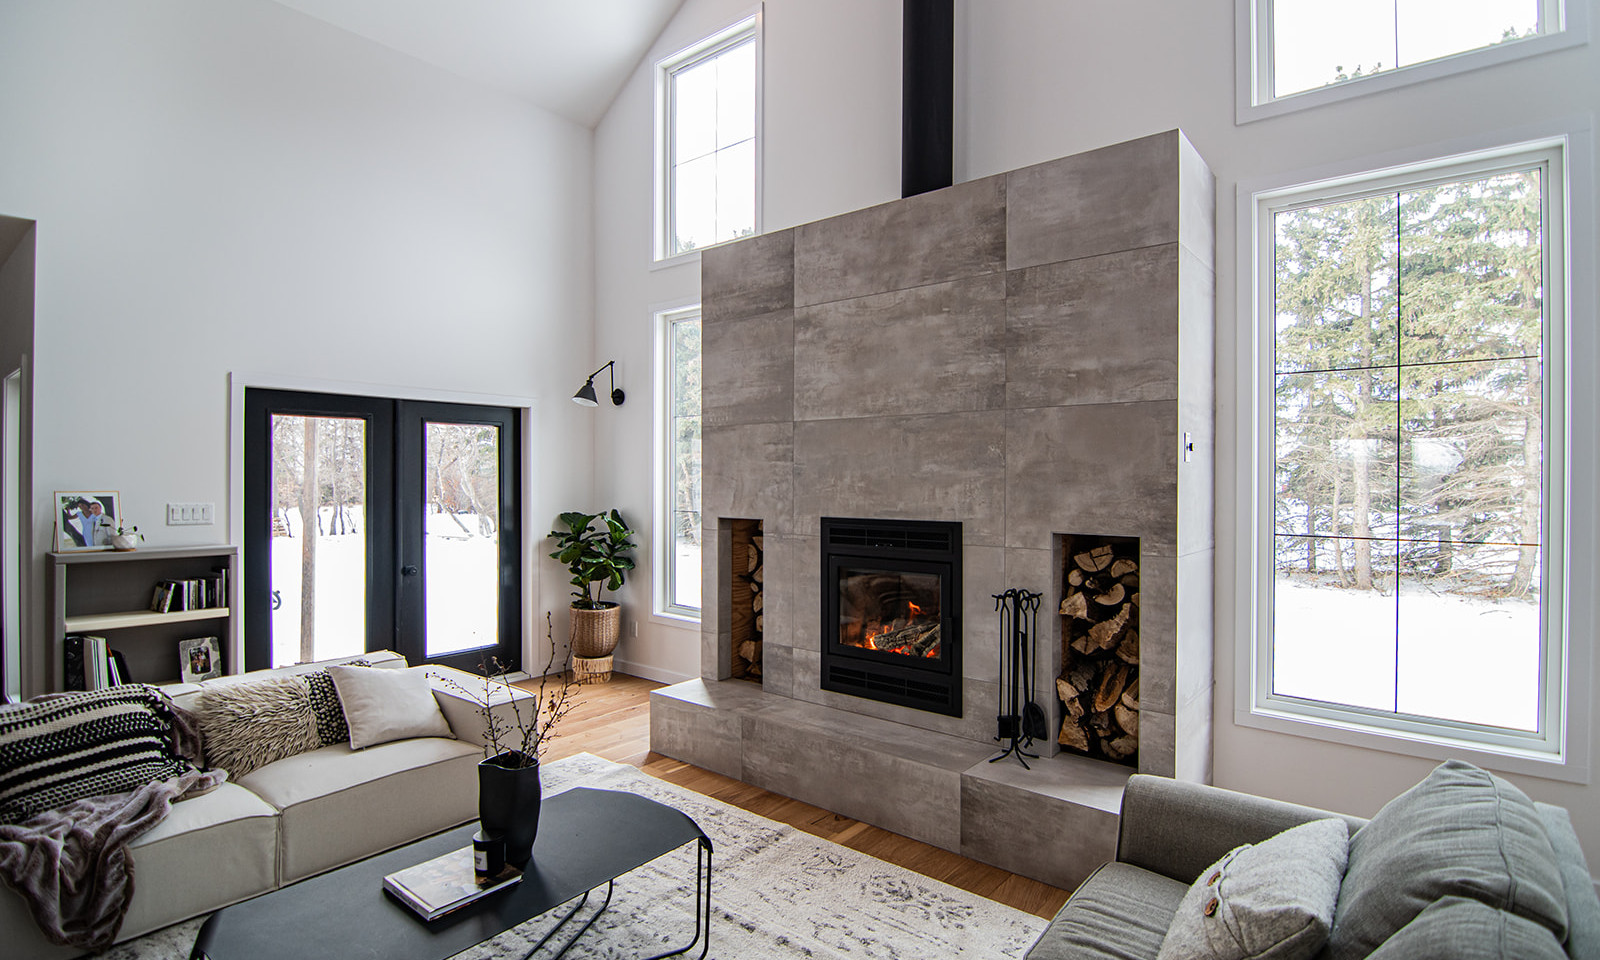 Fireplace in modern new build